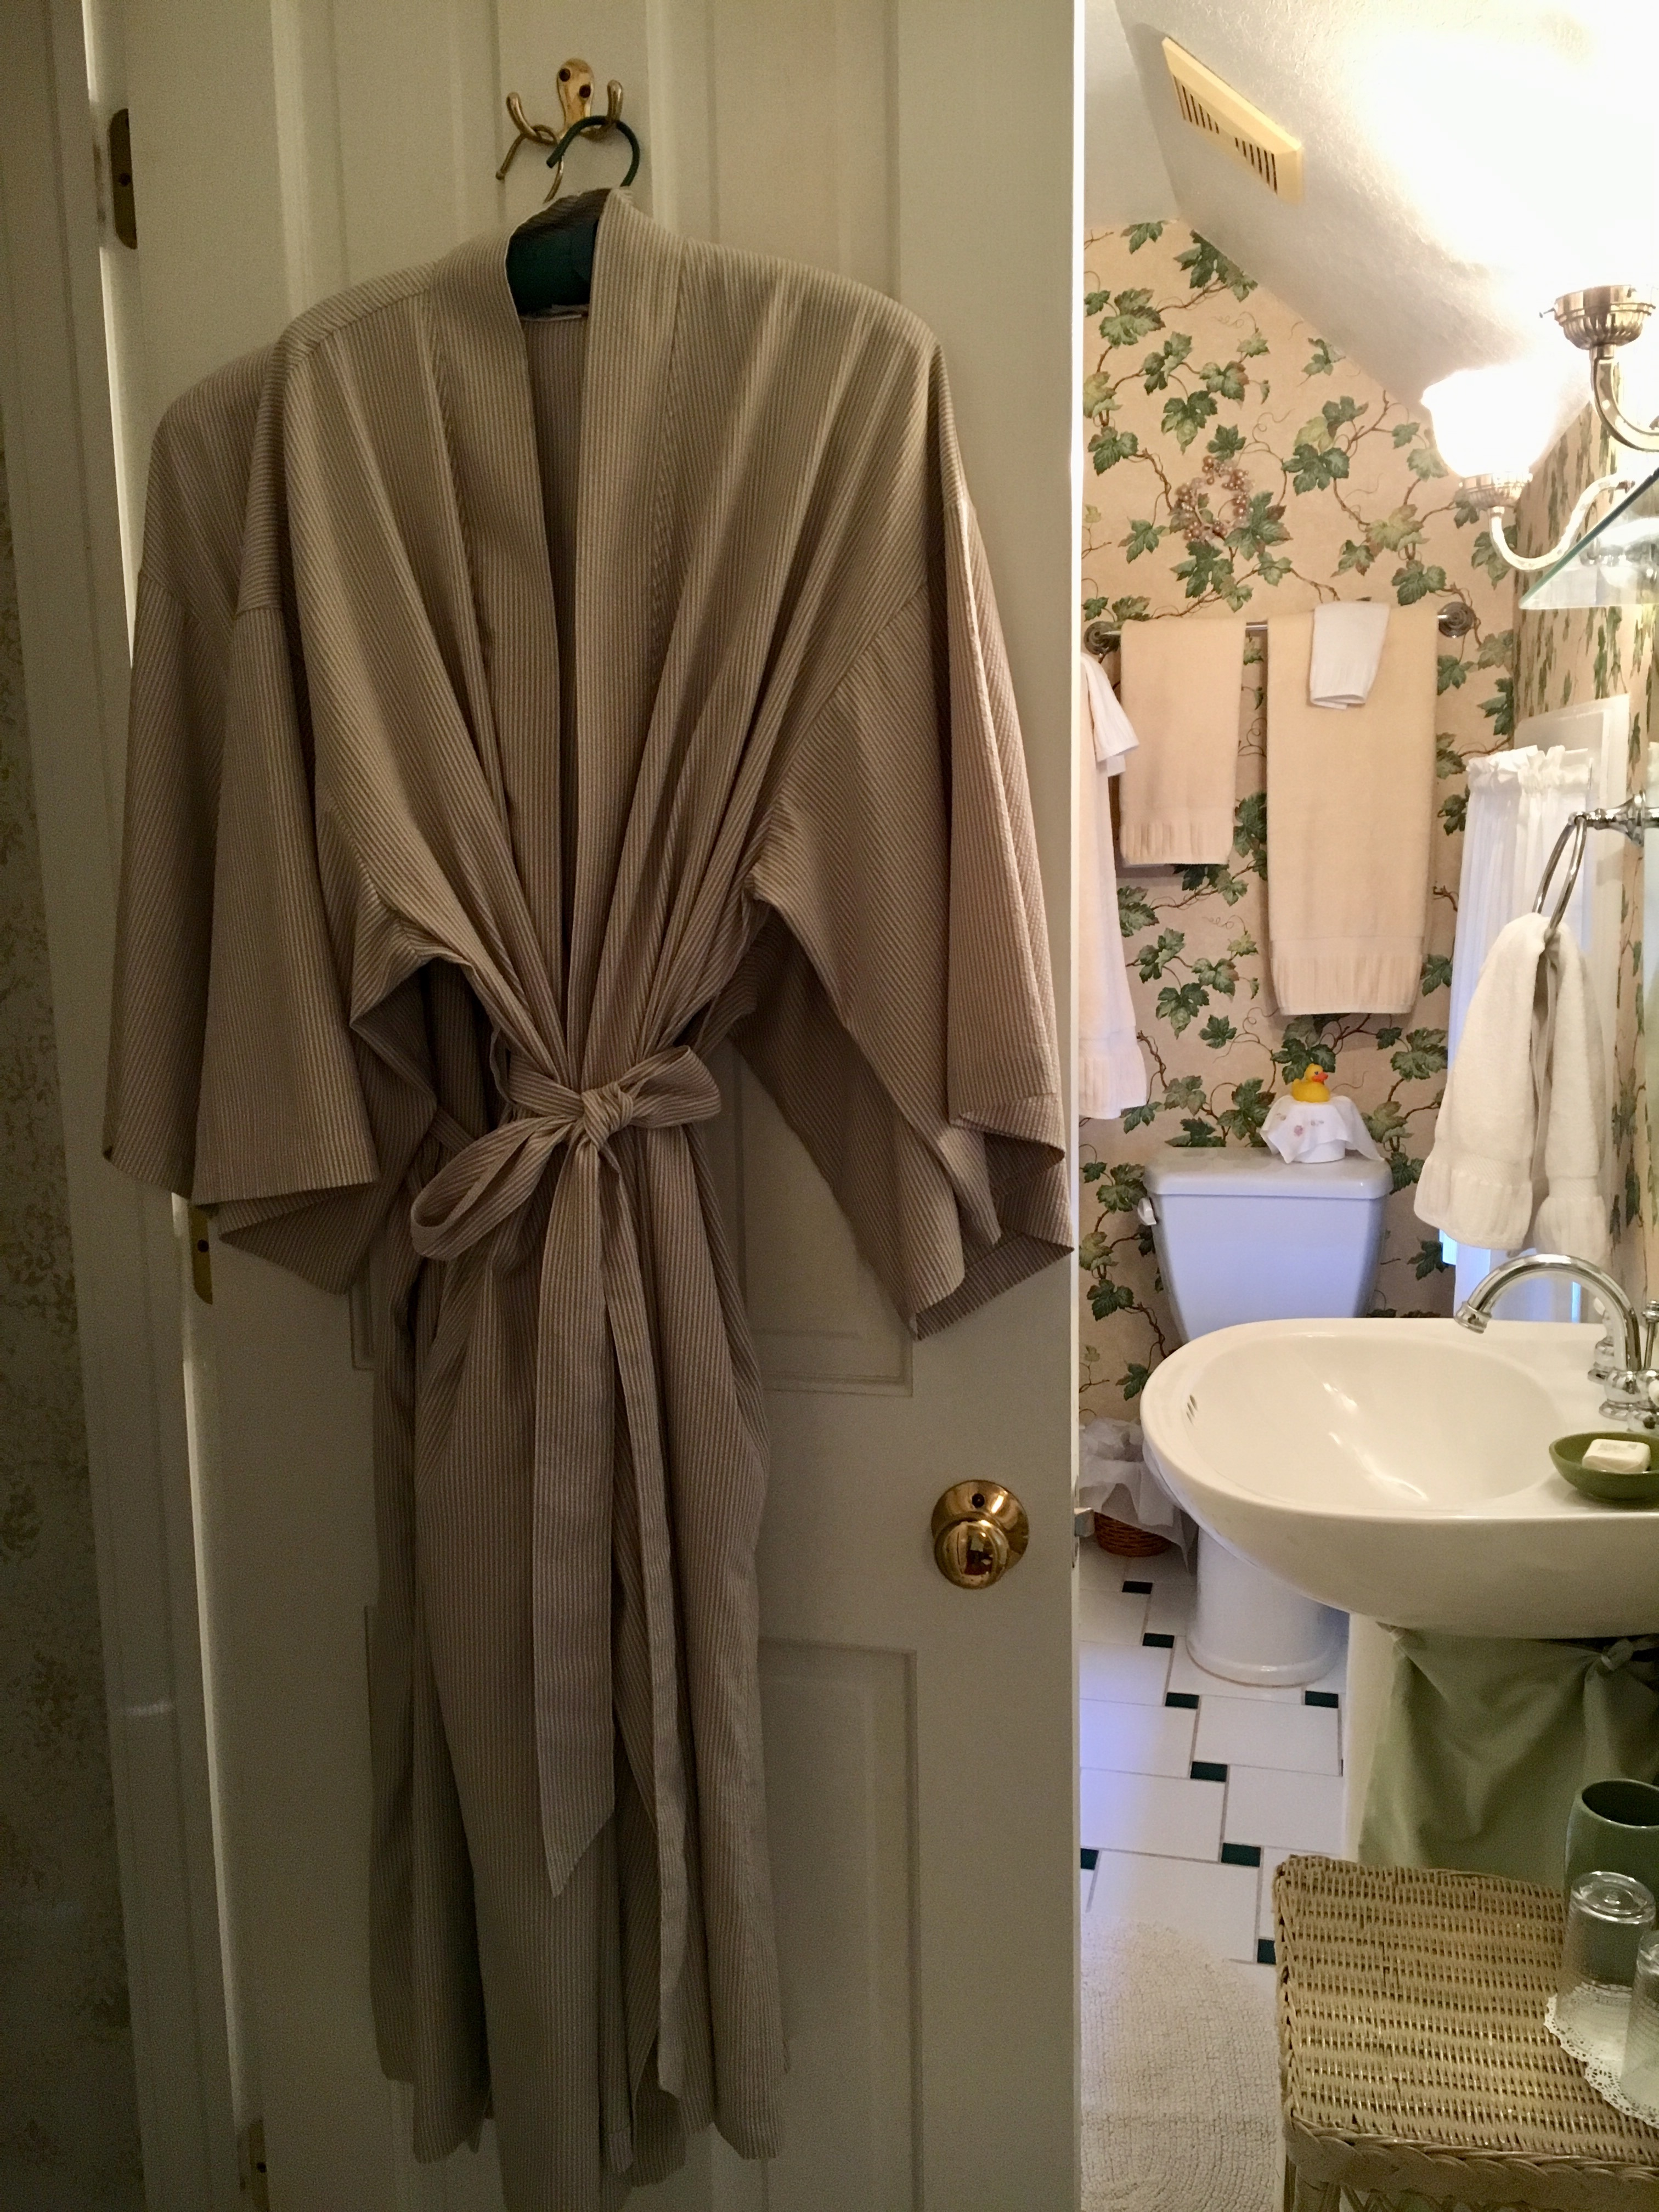 Cubbedge Robe and bath